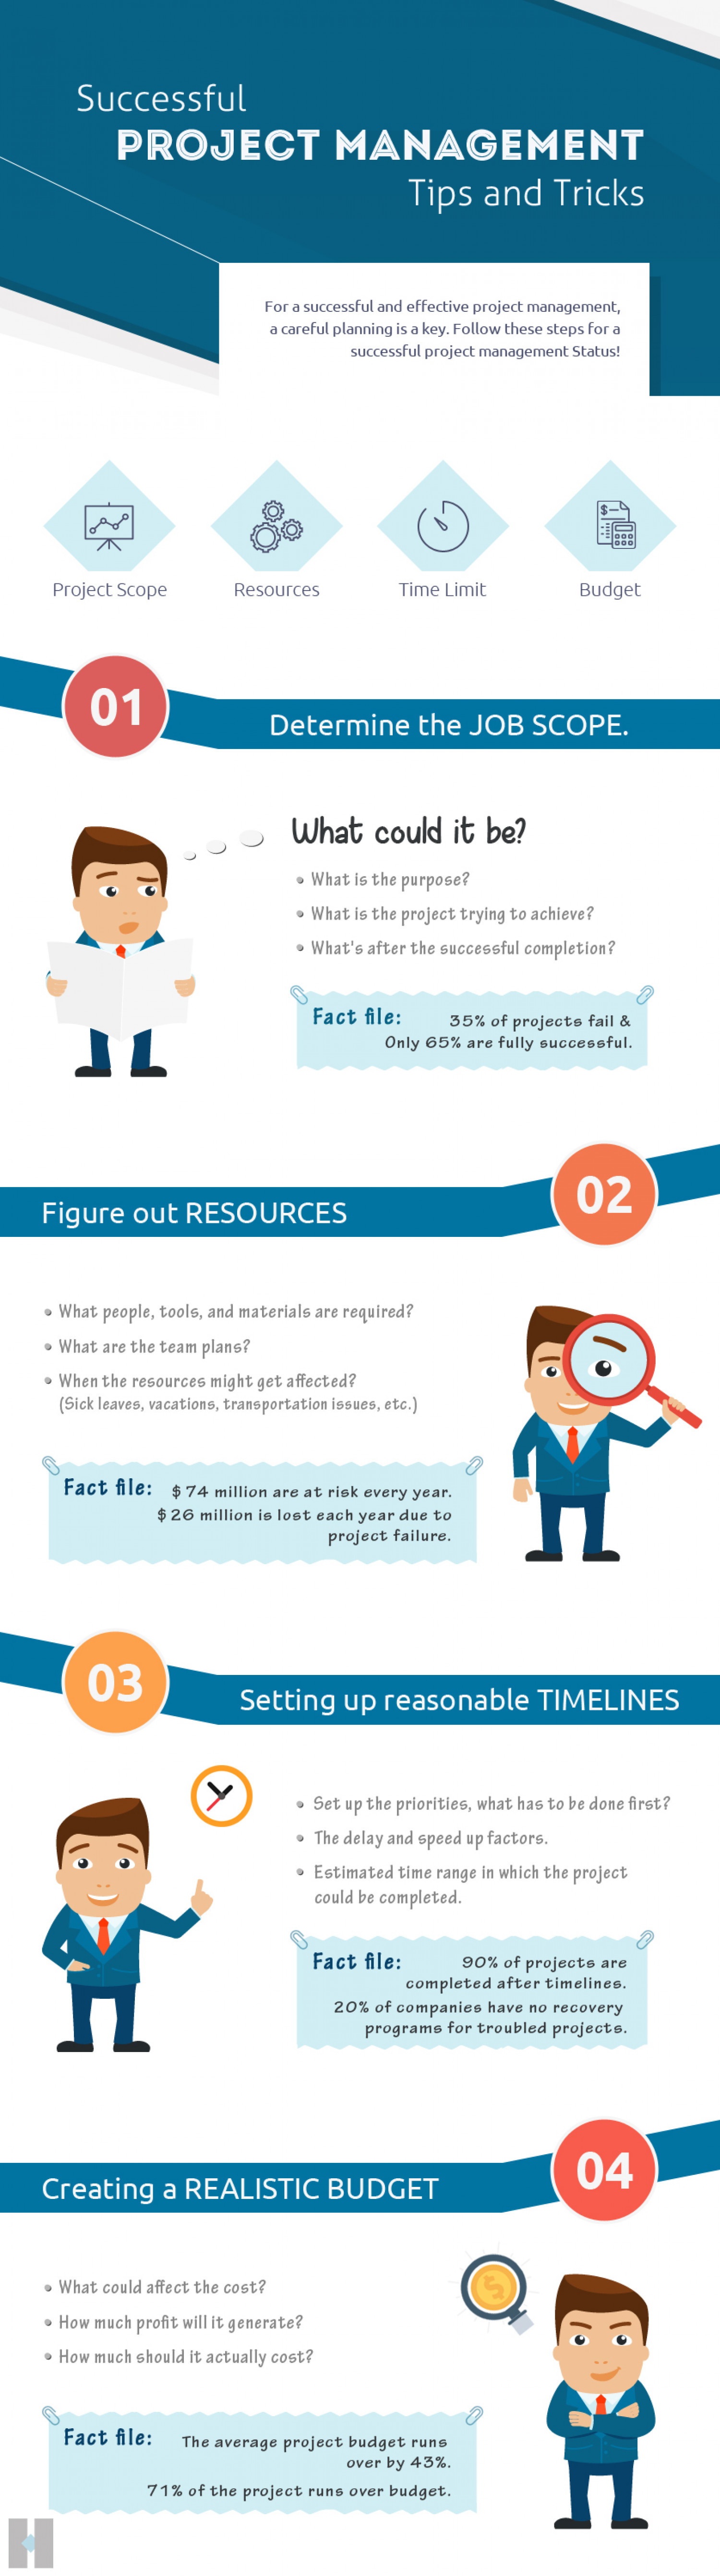 Successful Project Management Tips and Tricks - tecHindustan Infographic